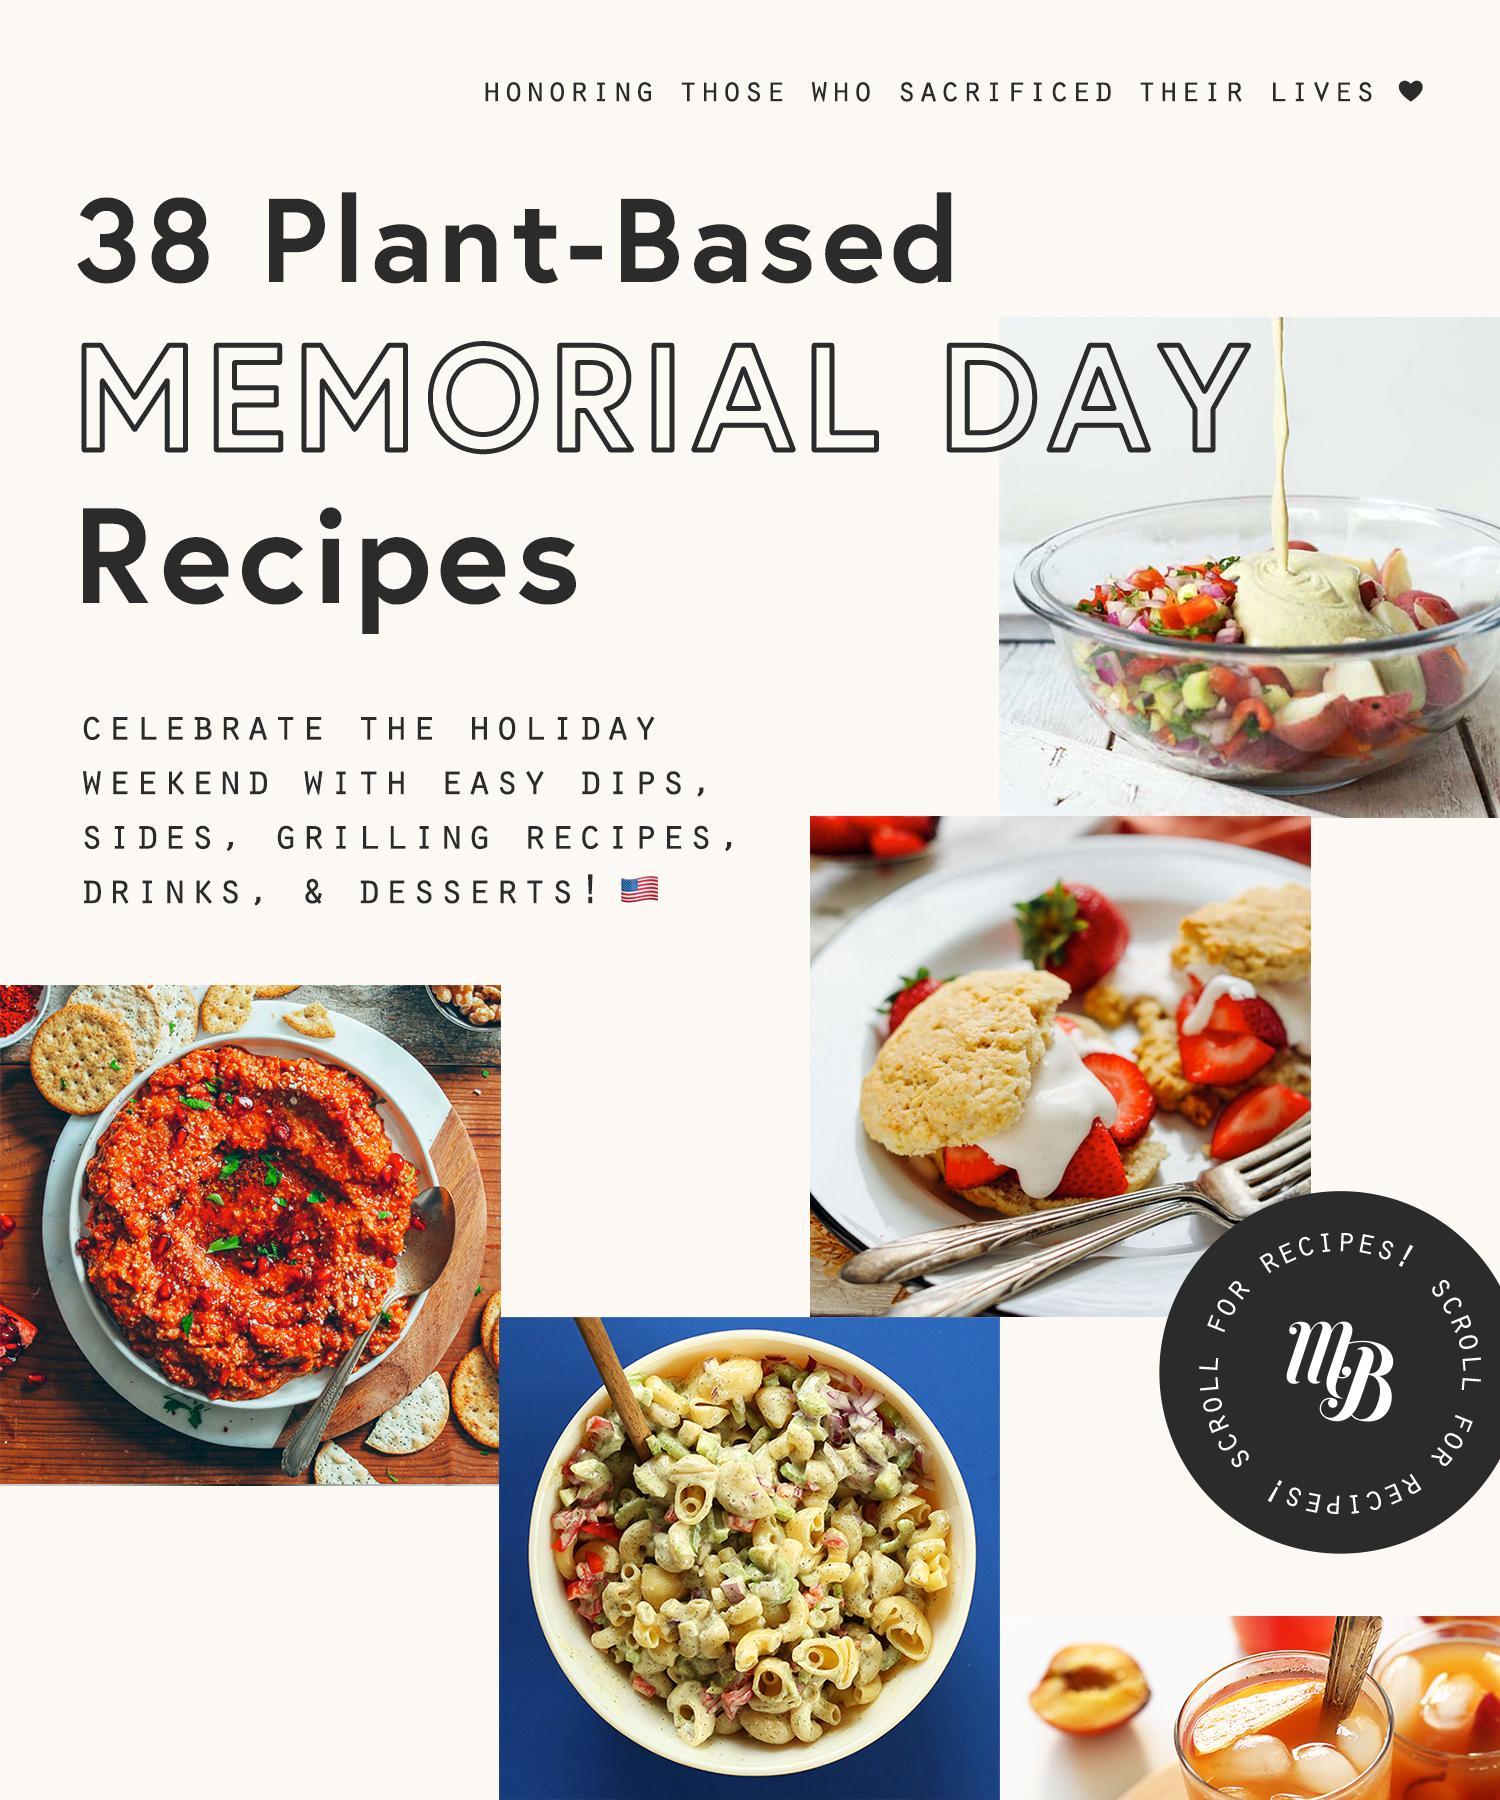 Salads, dips, drinks, and desserts for Memorial Day